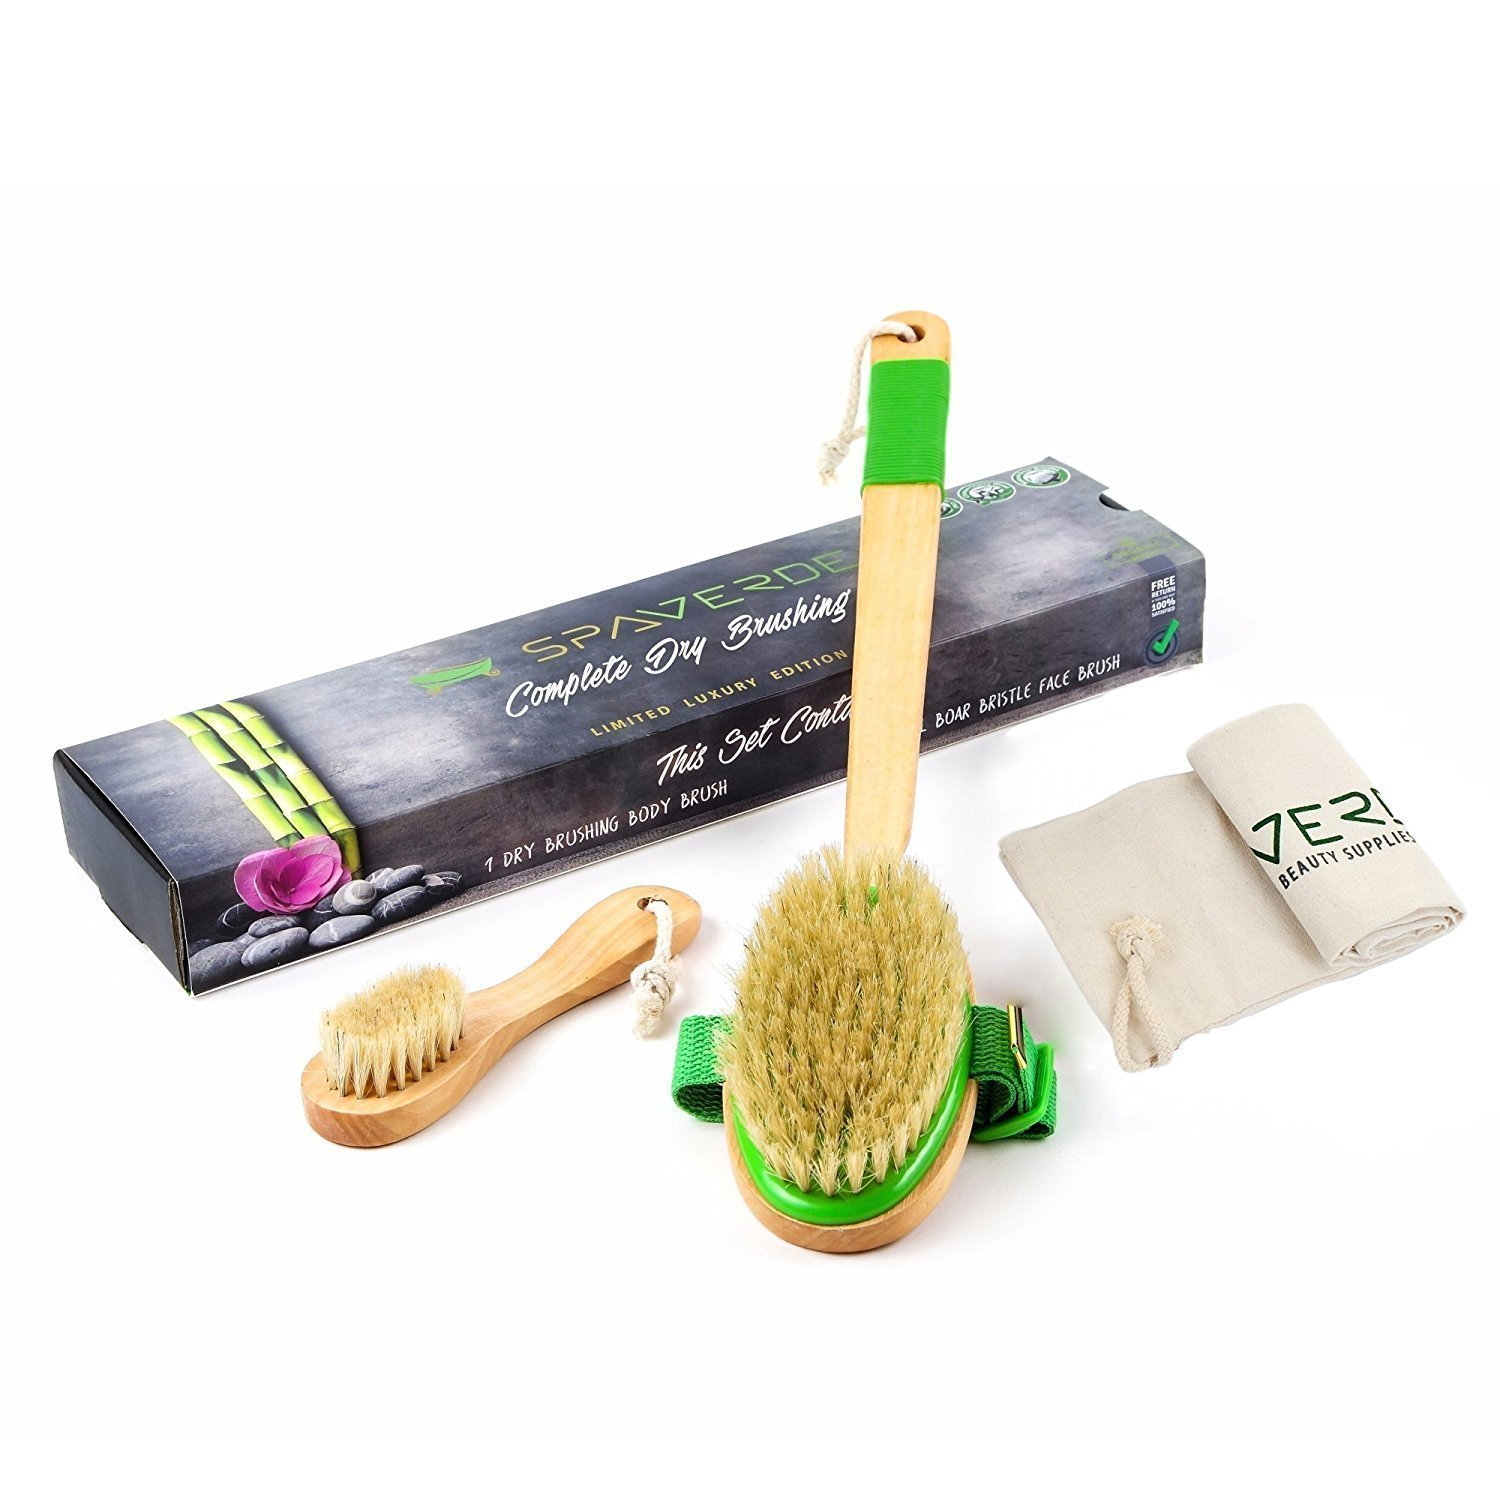 Dry Brushing Body Brush - Natural Boar Bristle Dry Brush Set for Body and Face Brushing - Skin Brush that Revitalizes and Rejuvenates - Aids Lymph Flow, Alleviates Cellulite and Eliminates Toxins by SpaVerde (Image #1)